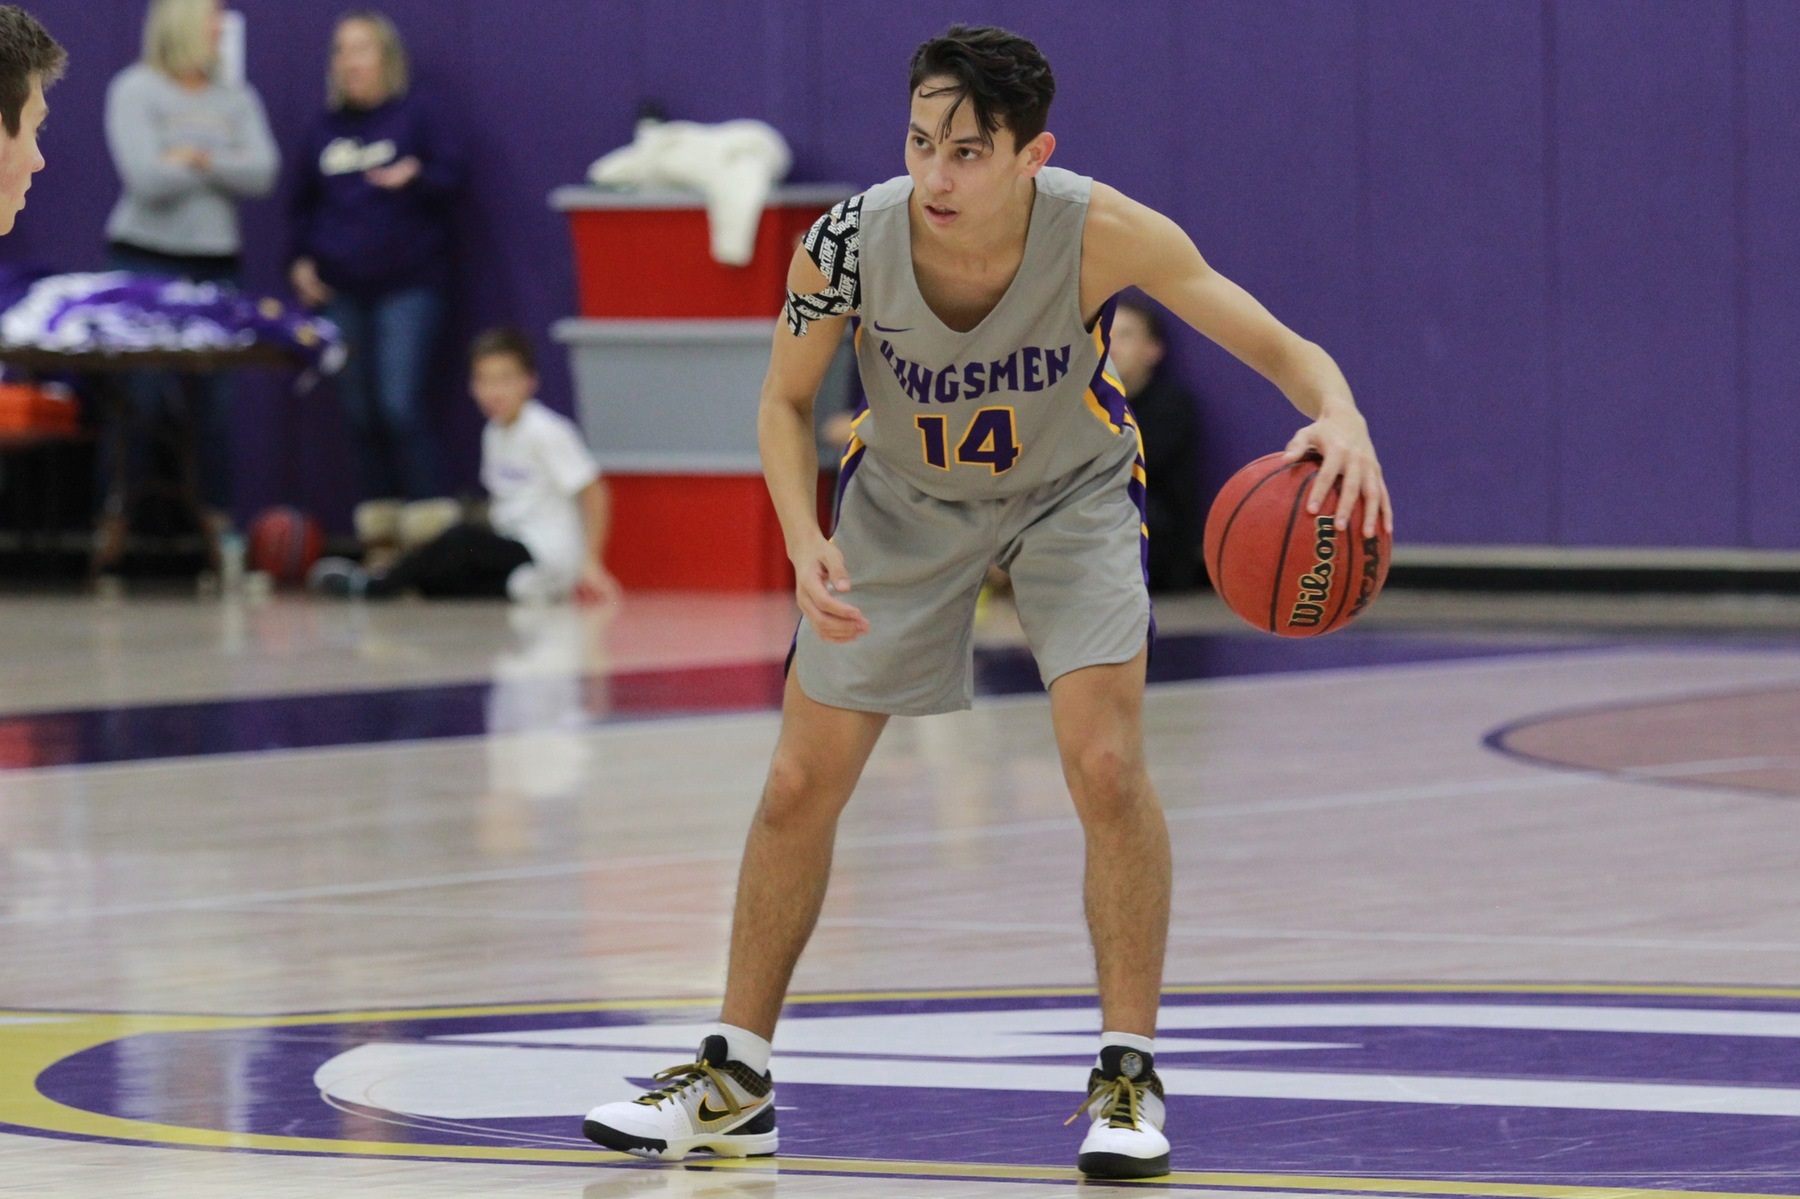 Big Second Half Helps Stags Past Kingsmen